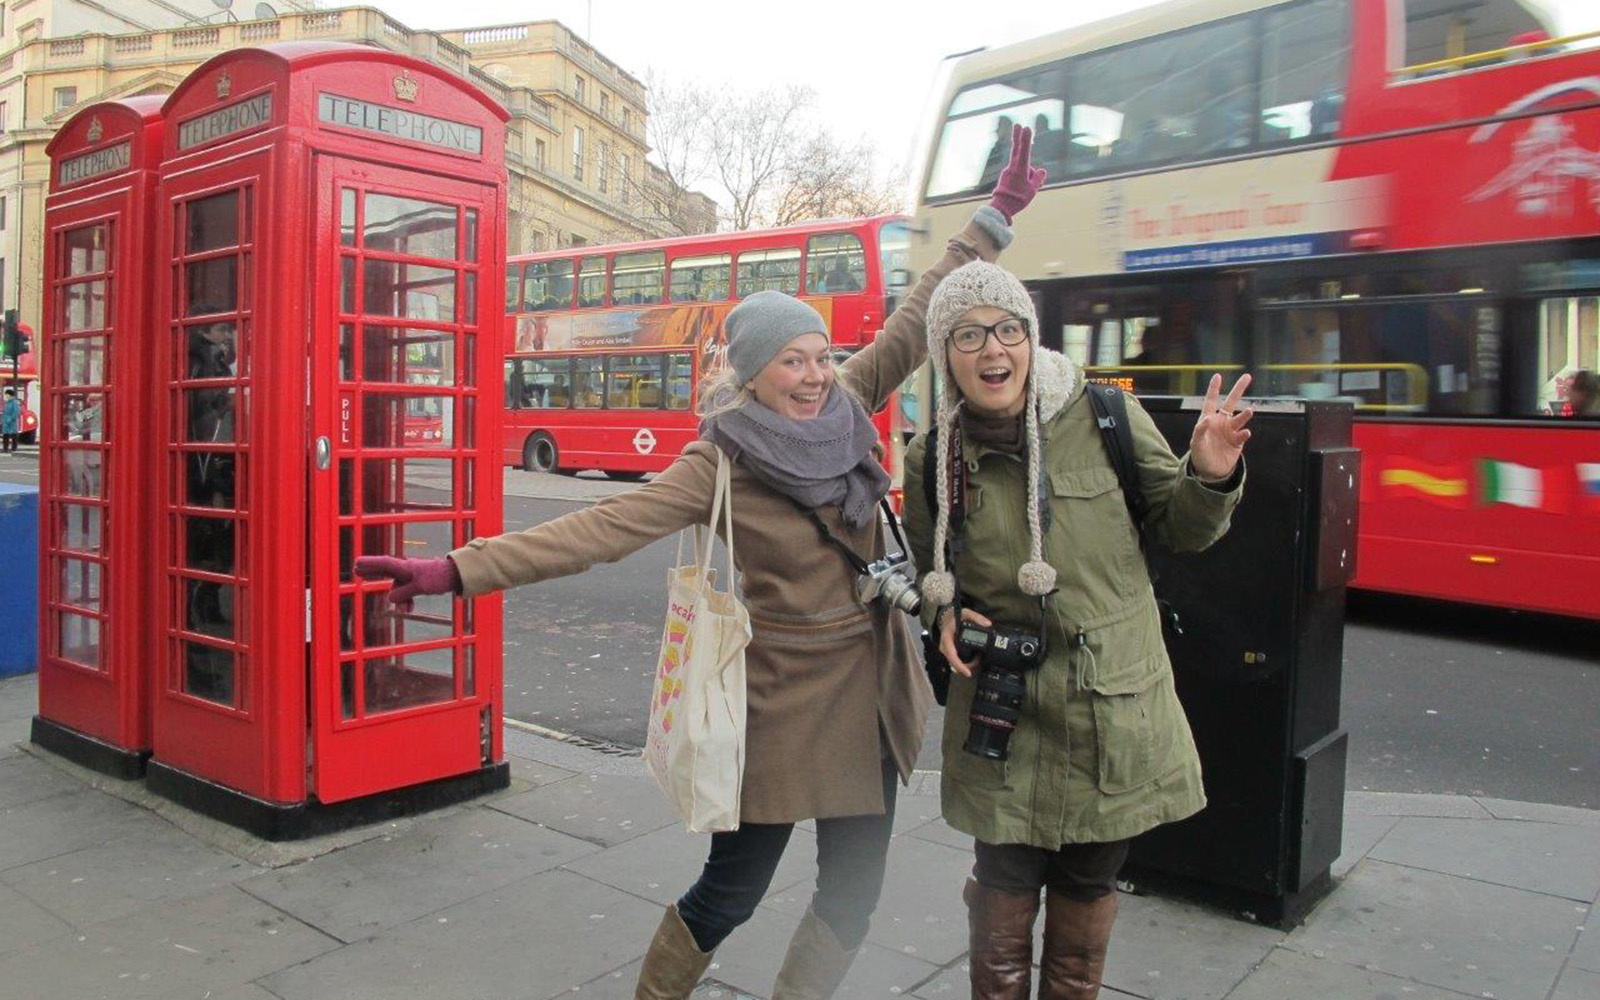 Girls In London 1